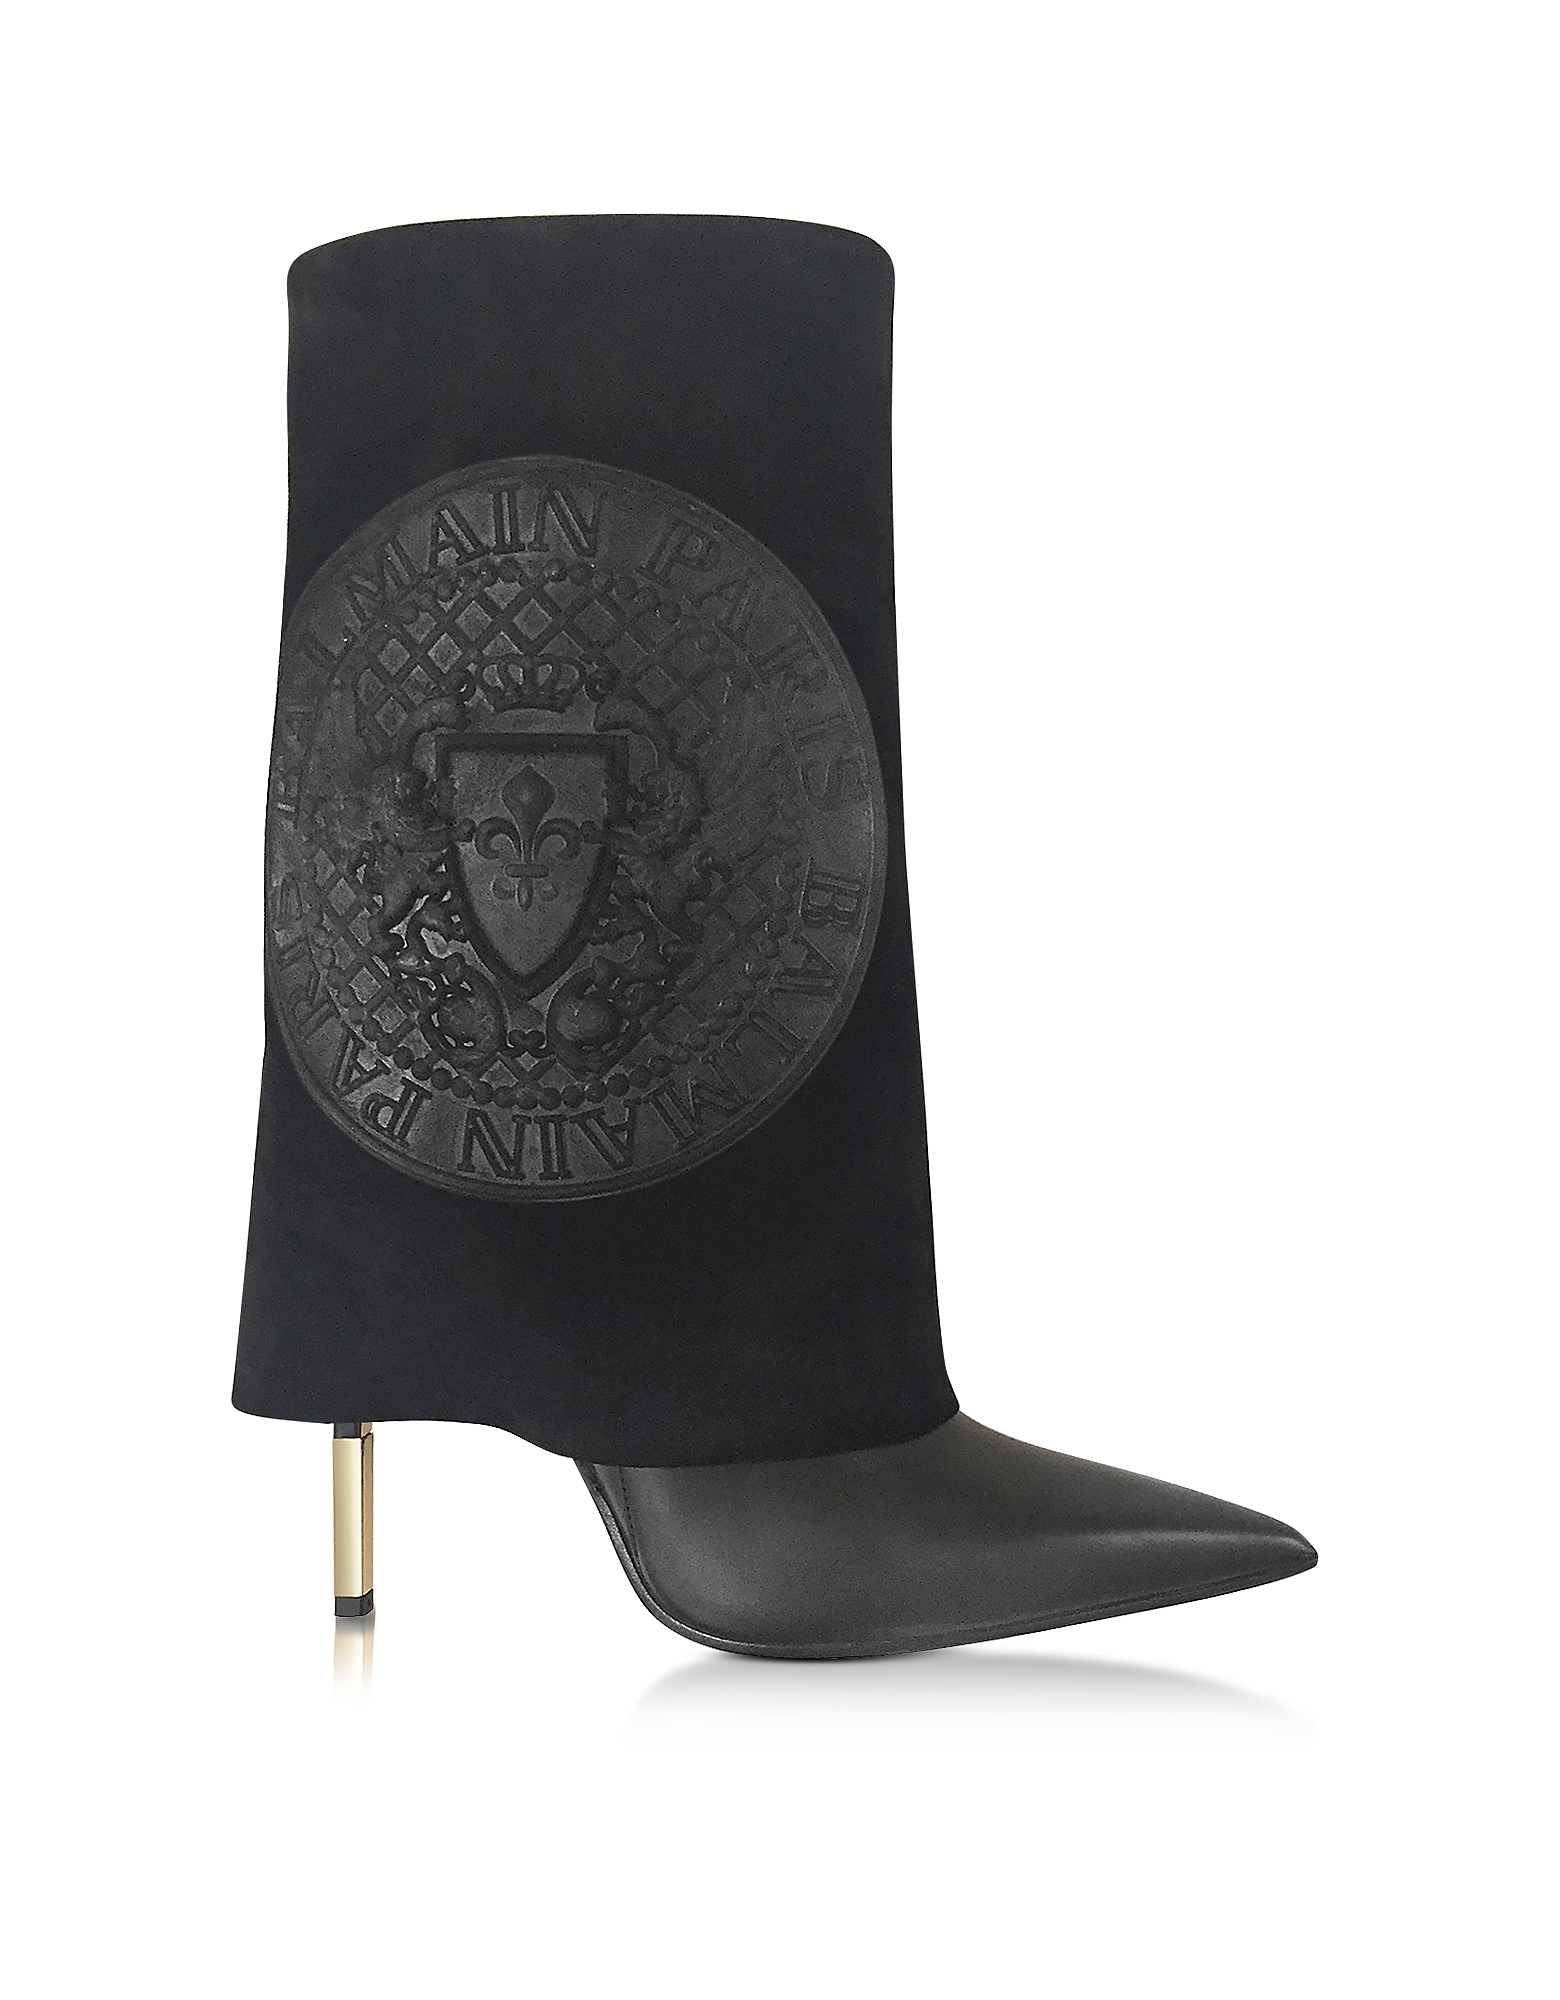 Balmain Shoes, Babette Black Leather and Suede High Heel Boots